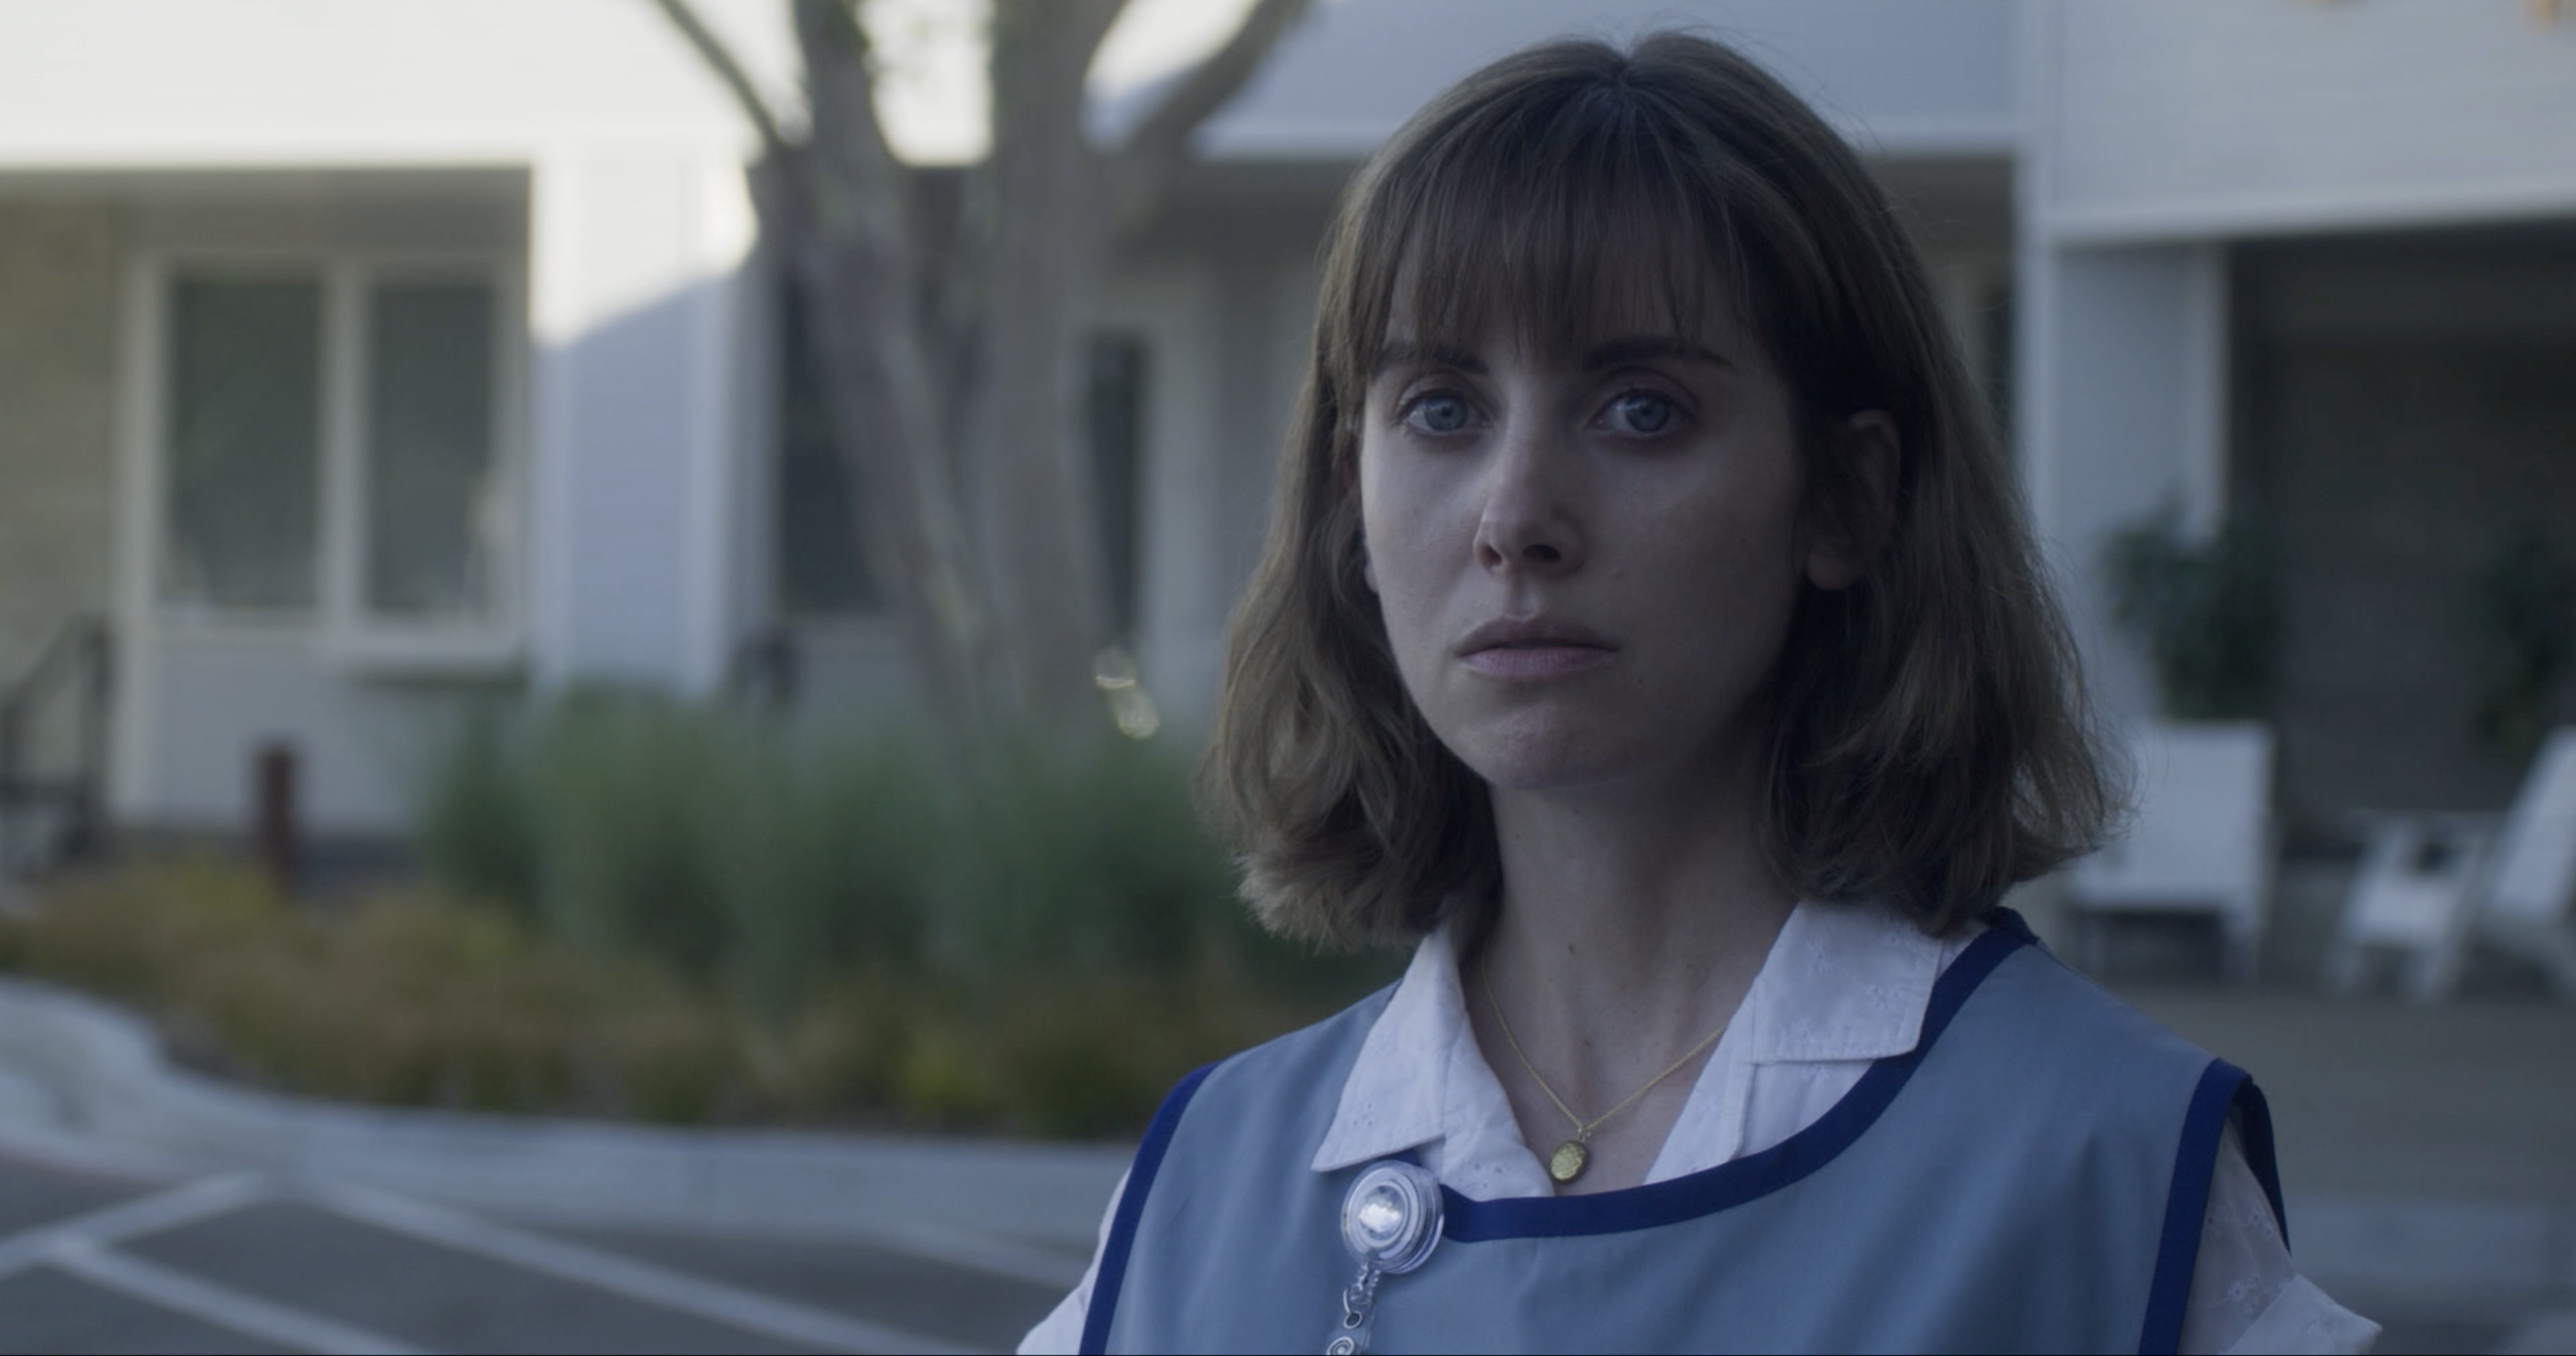 Alison Brie Encounters the Strange and Surreal in 'Horse Girl' Trailer